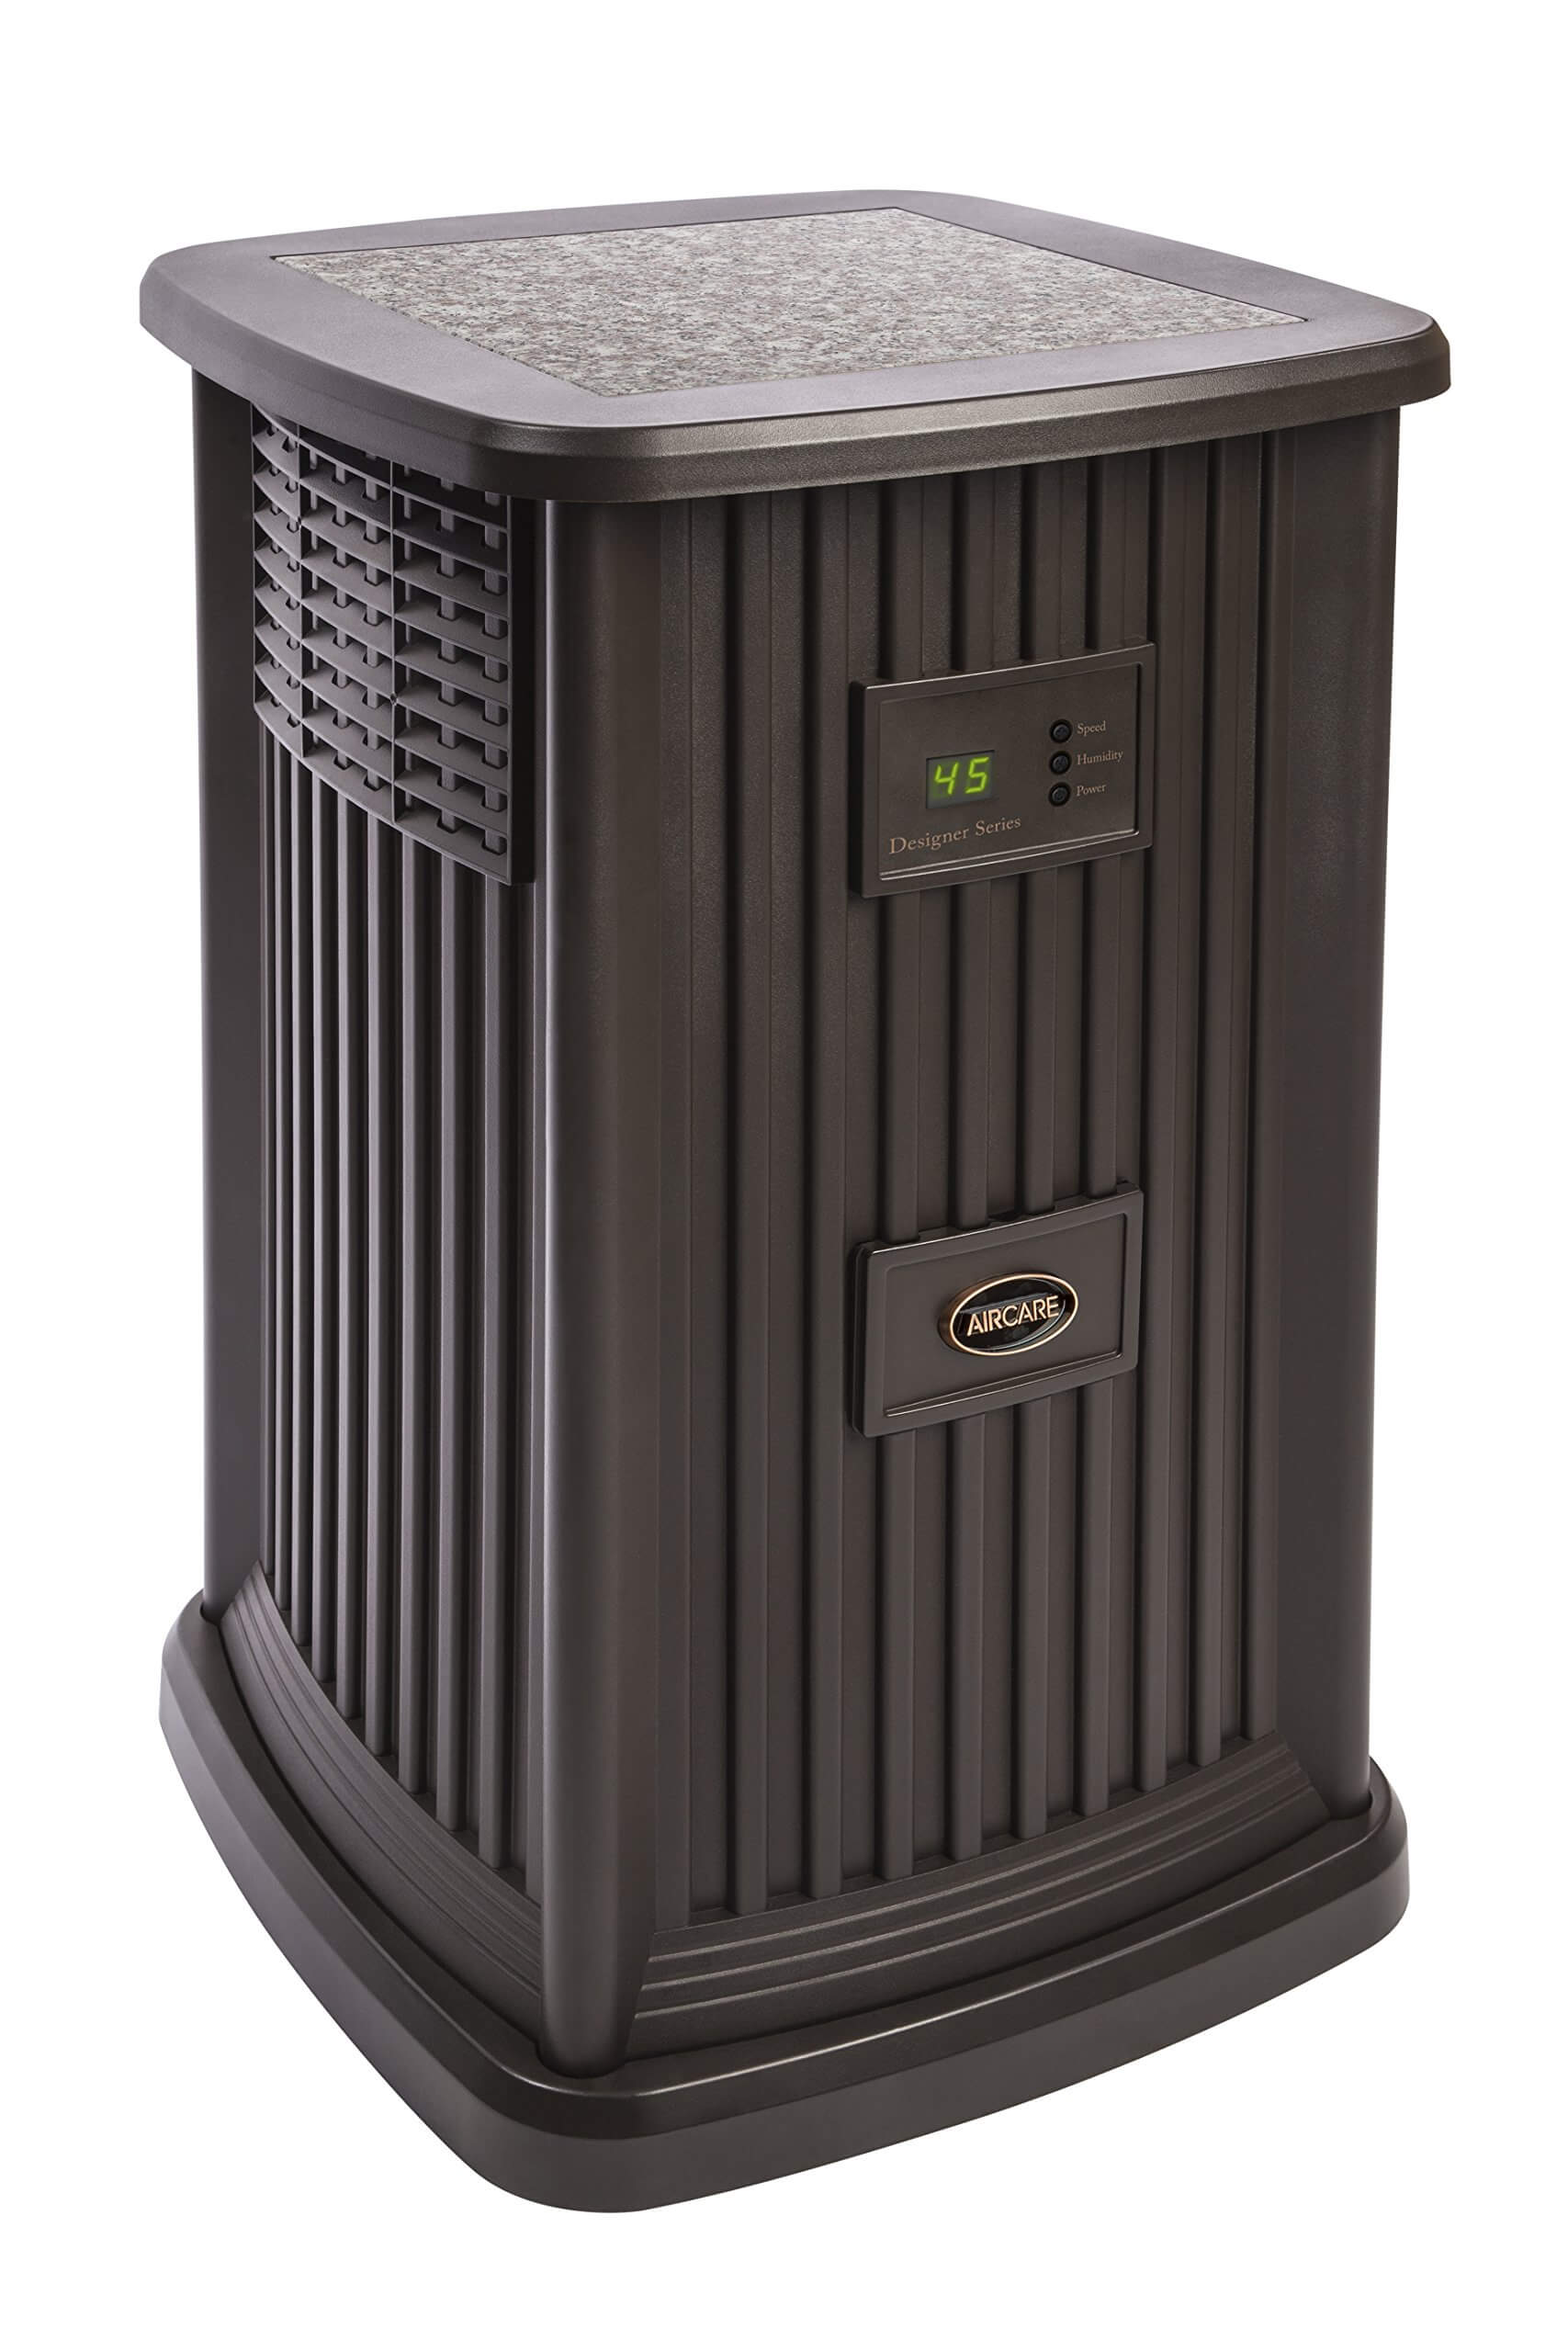 aircare ep9 800 review  best whole house humidifier 2021